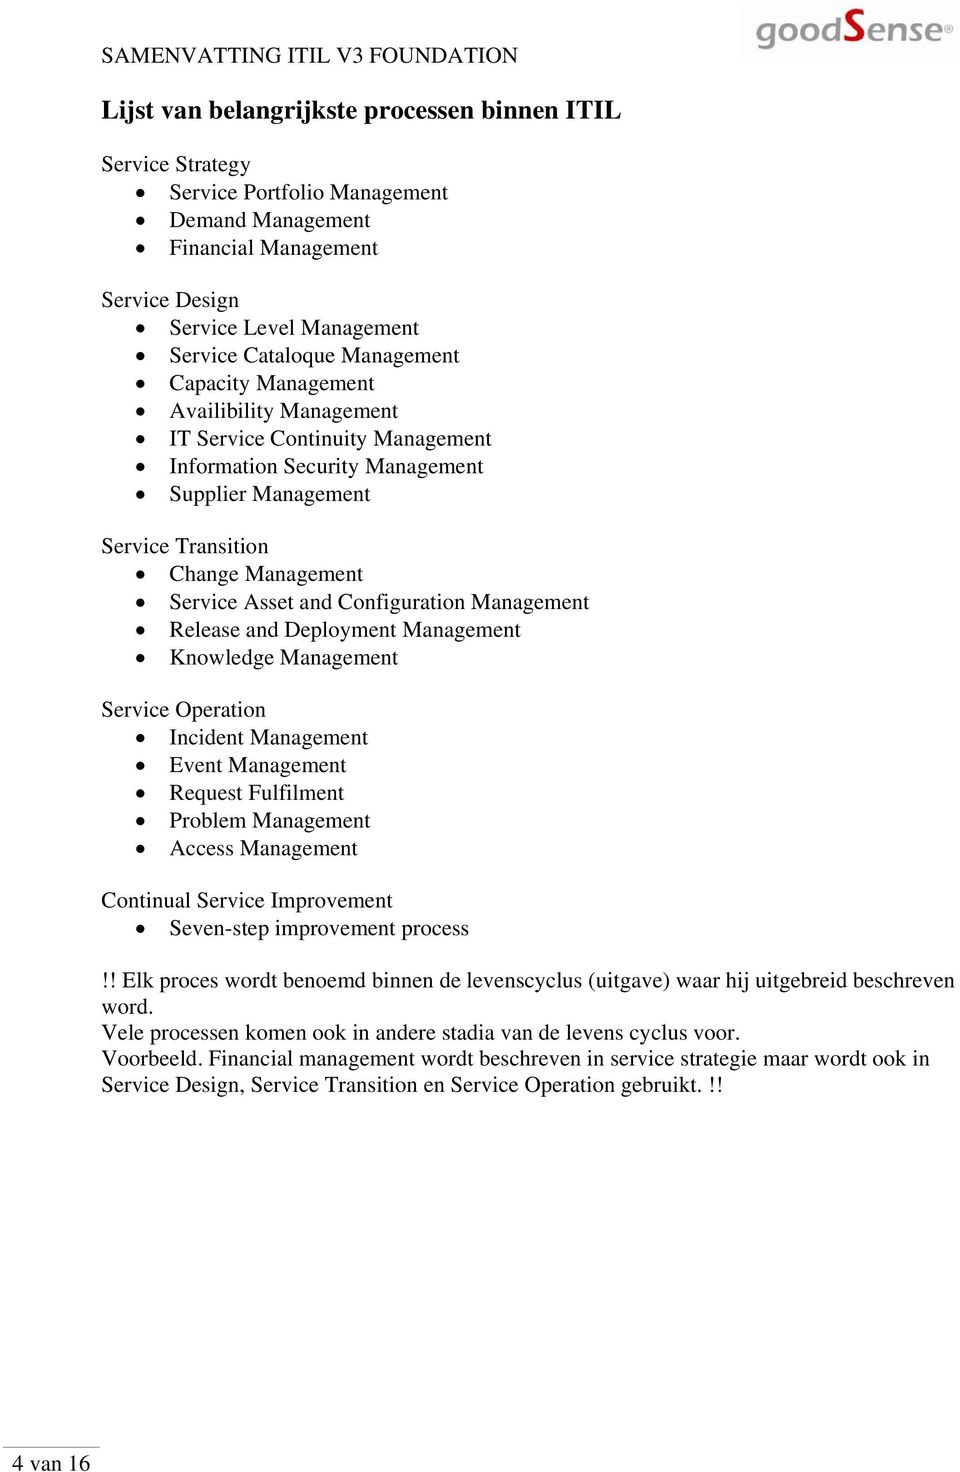 Management Release and Deployment Management Knowledge Management Service Operation Incident Management Event Management Request Fulfilment Problem Management Access Management Continual Service